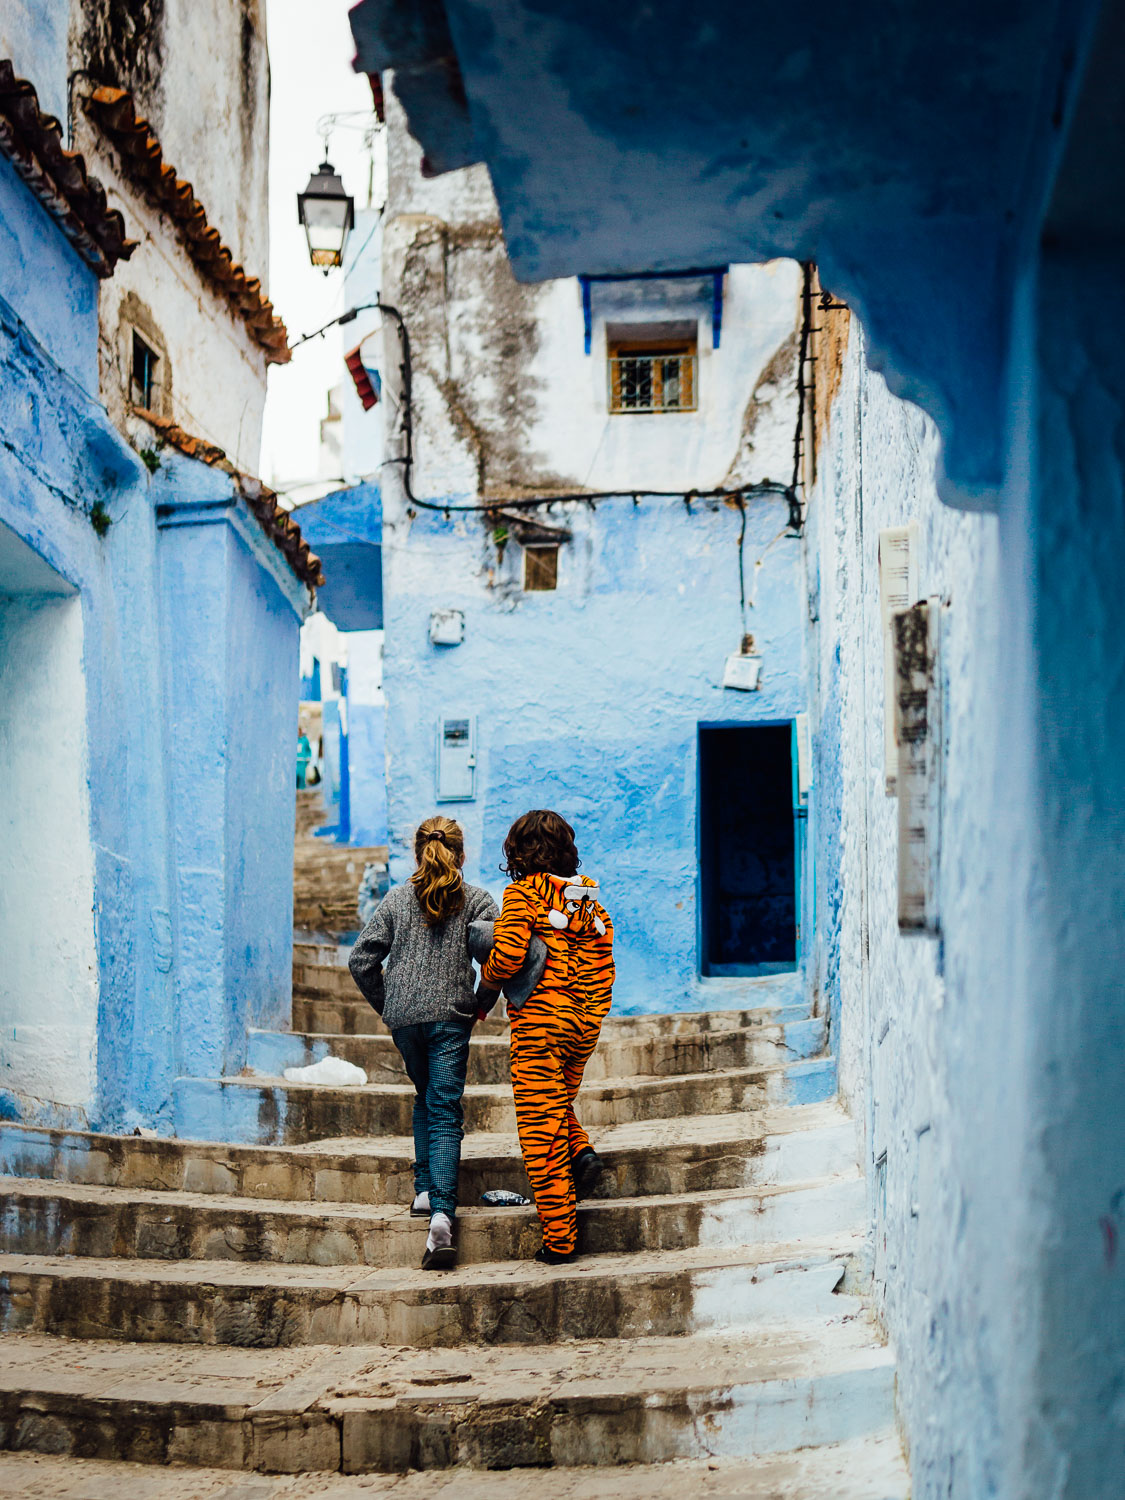 Blue-Children-Playful-Tiger-City-Tradition-Morocco-Durazo-Photography